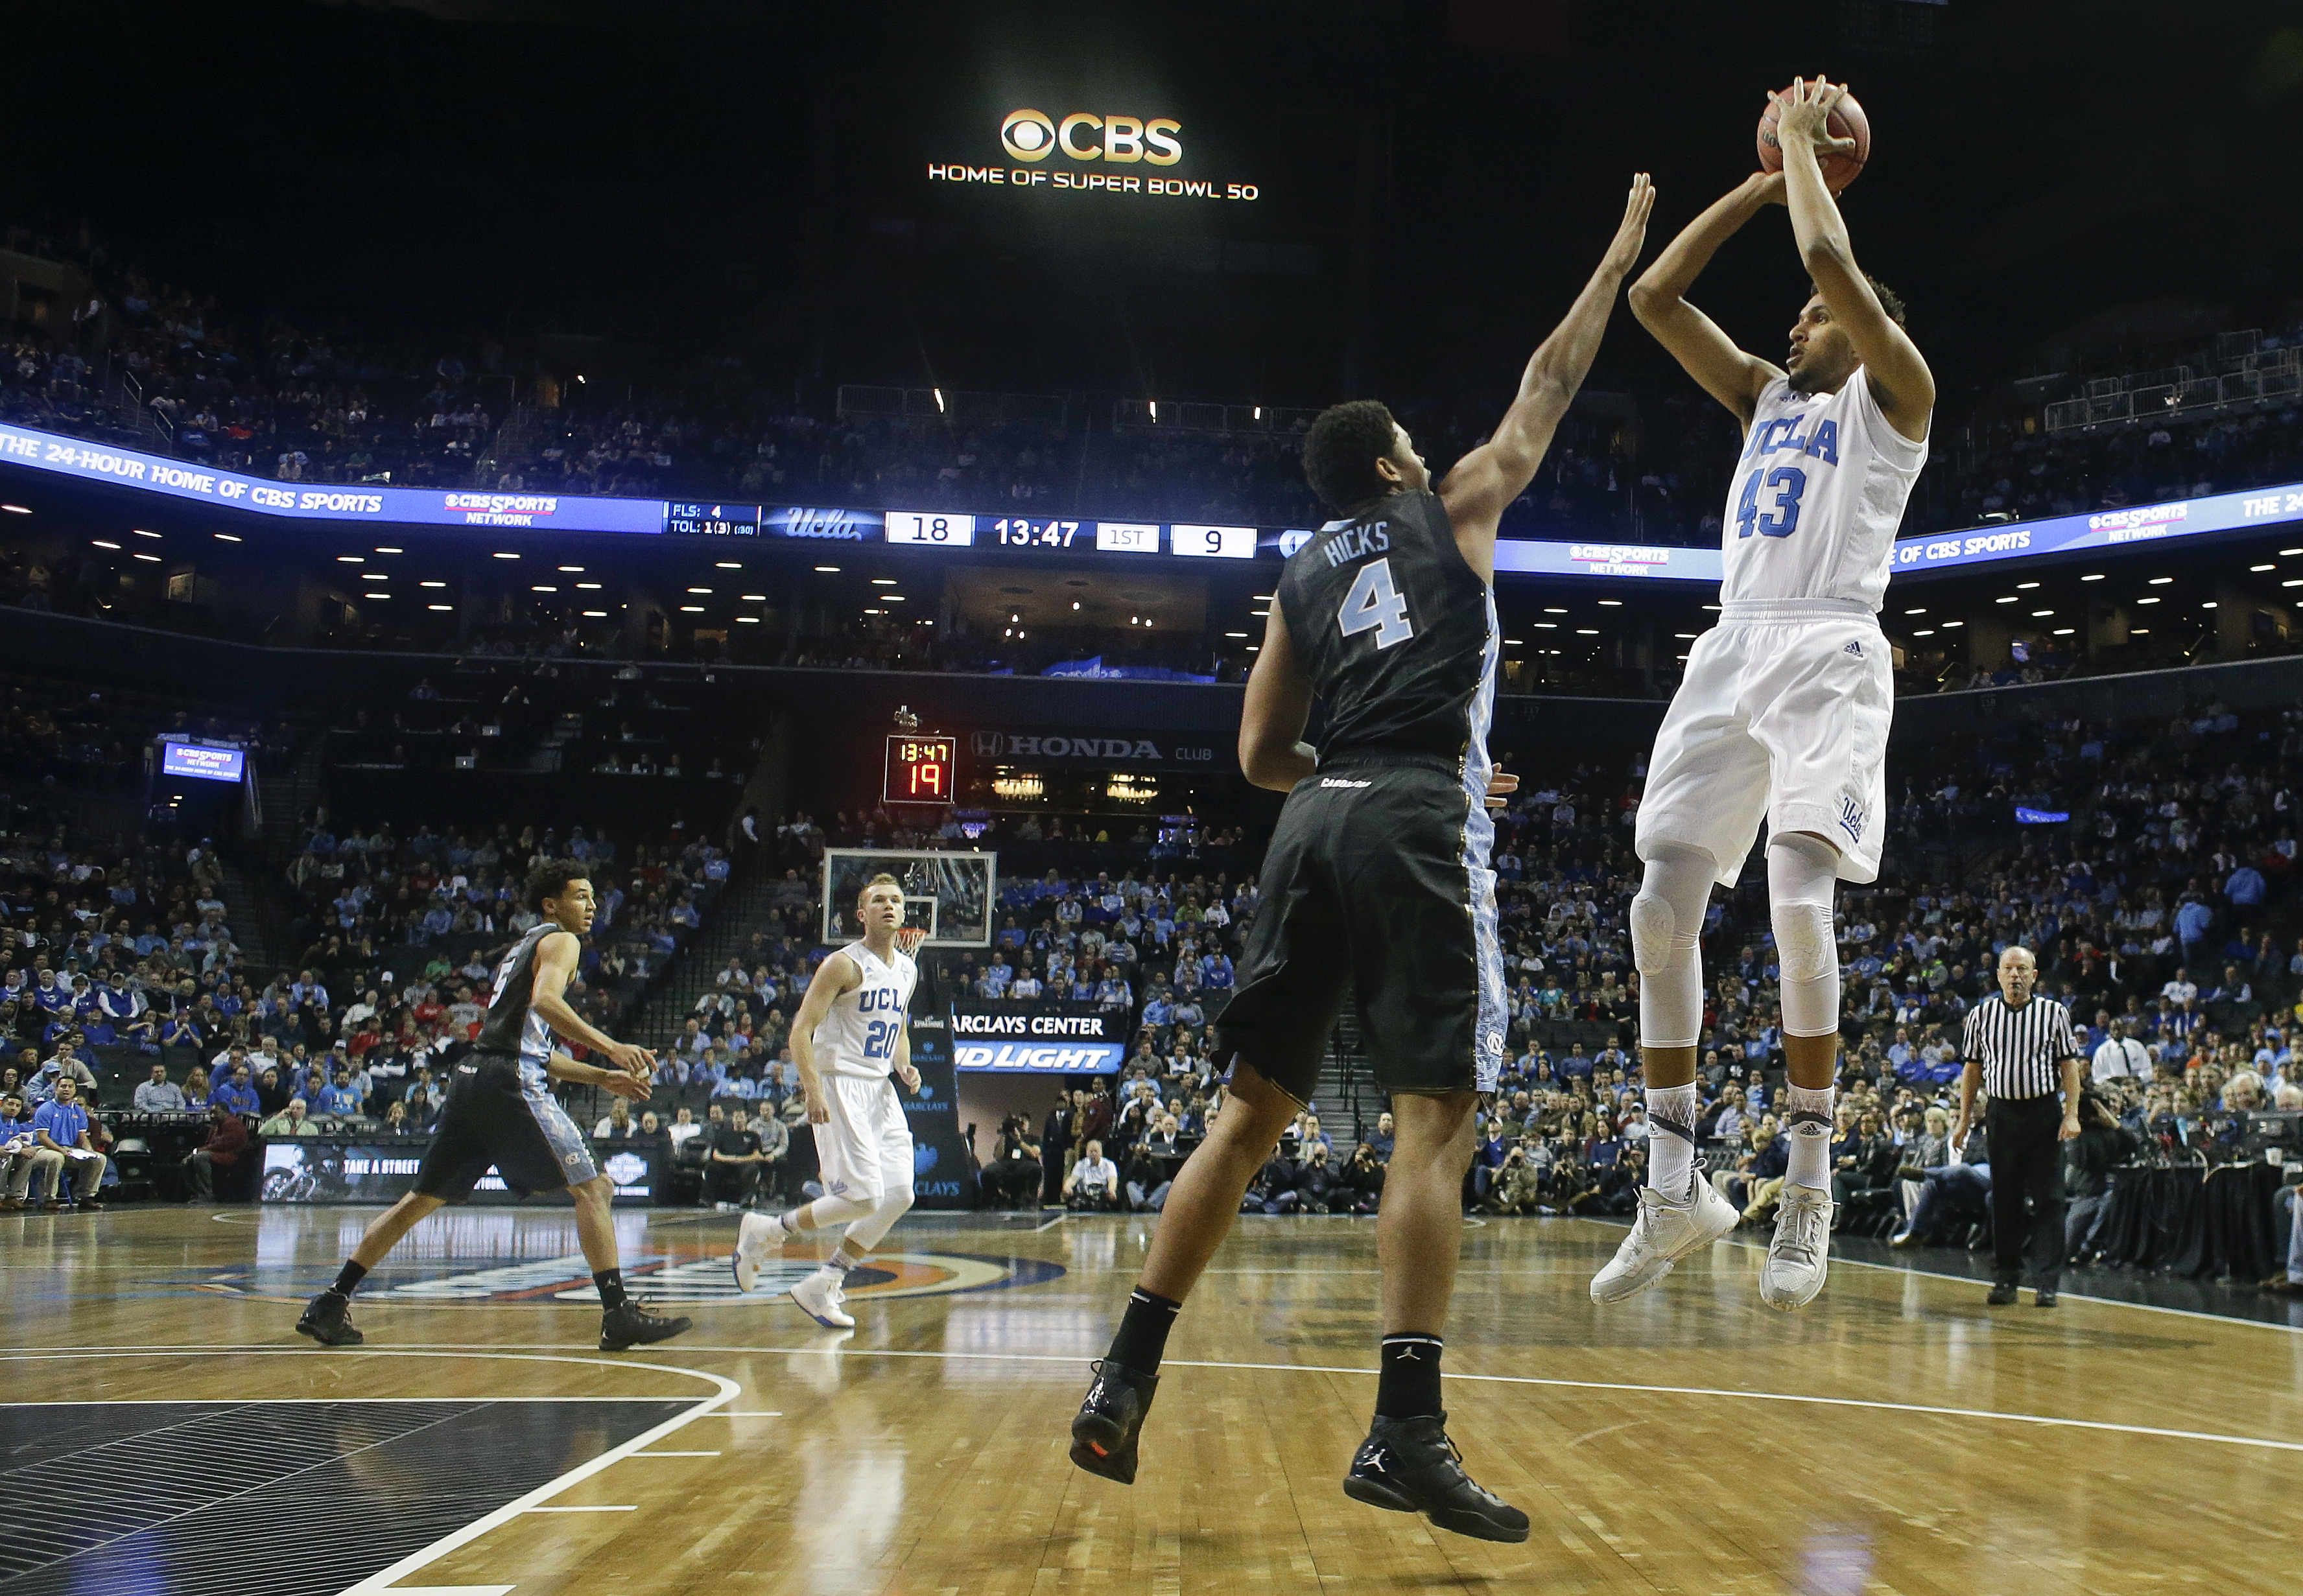 FILE - In this Dec. 19, 2015, file photo, UCLA's Jonah Bolden (43) shoots over North Carolina's Isaiah Hicks (4) during the first half of an NCAA college basketball game in New York. Shorter shot clocks and fewer timeouts. Less hand-checking and physical